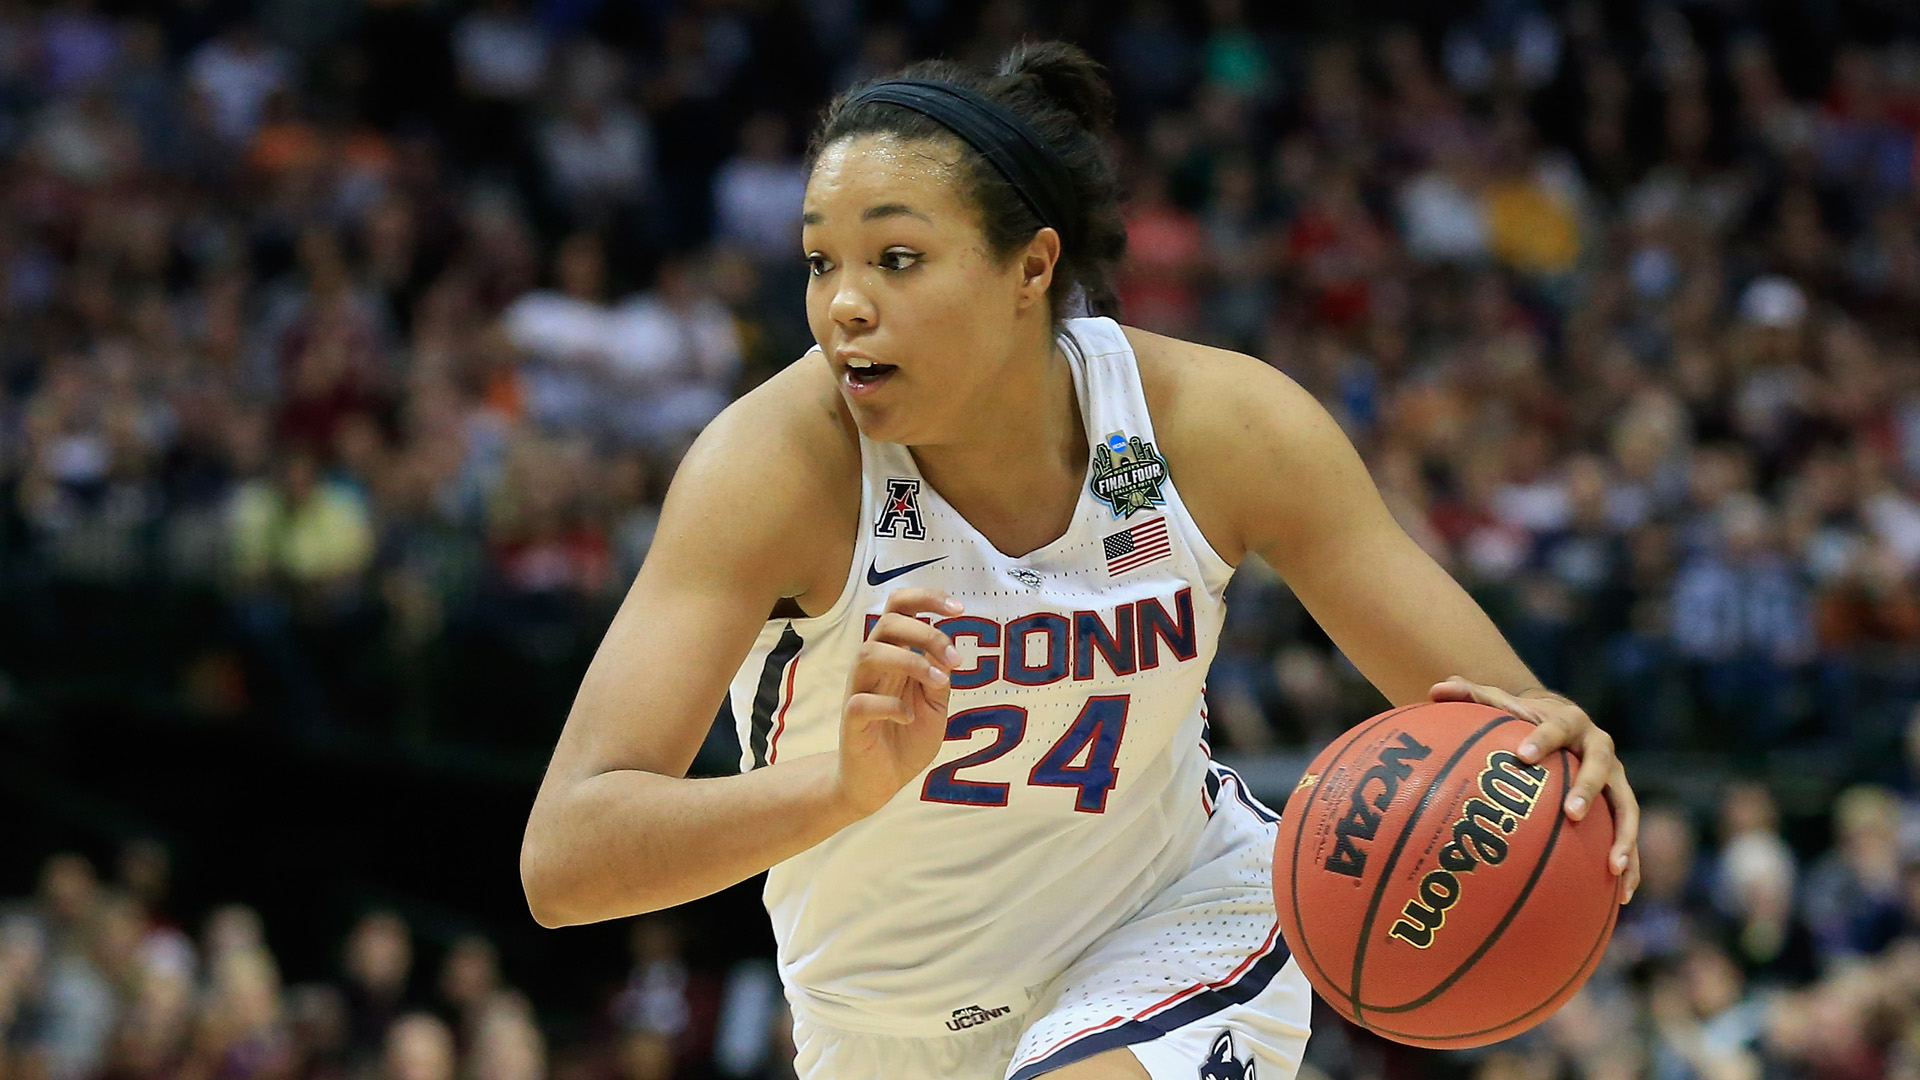 UConn Women Open NCAA Tournament With Victory Over Helpless St. Francis (Pa.)